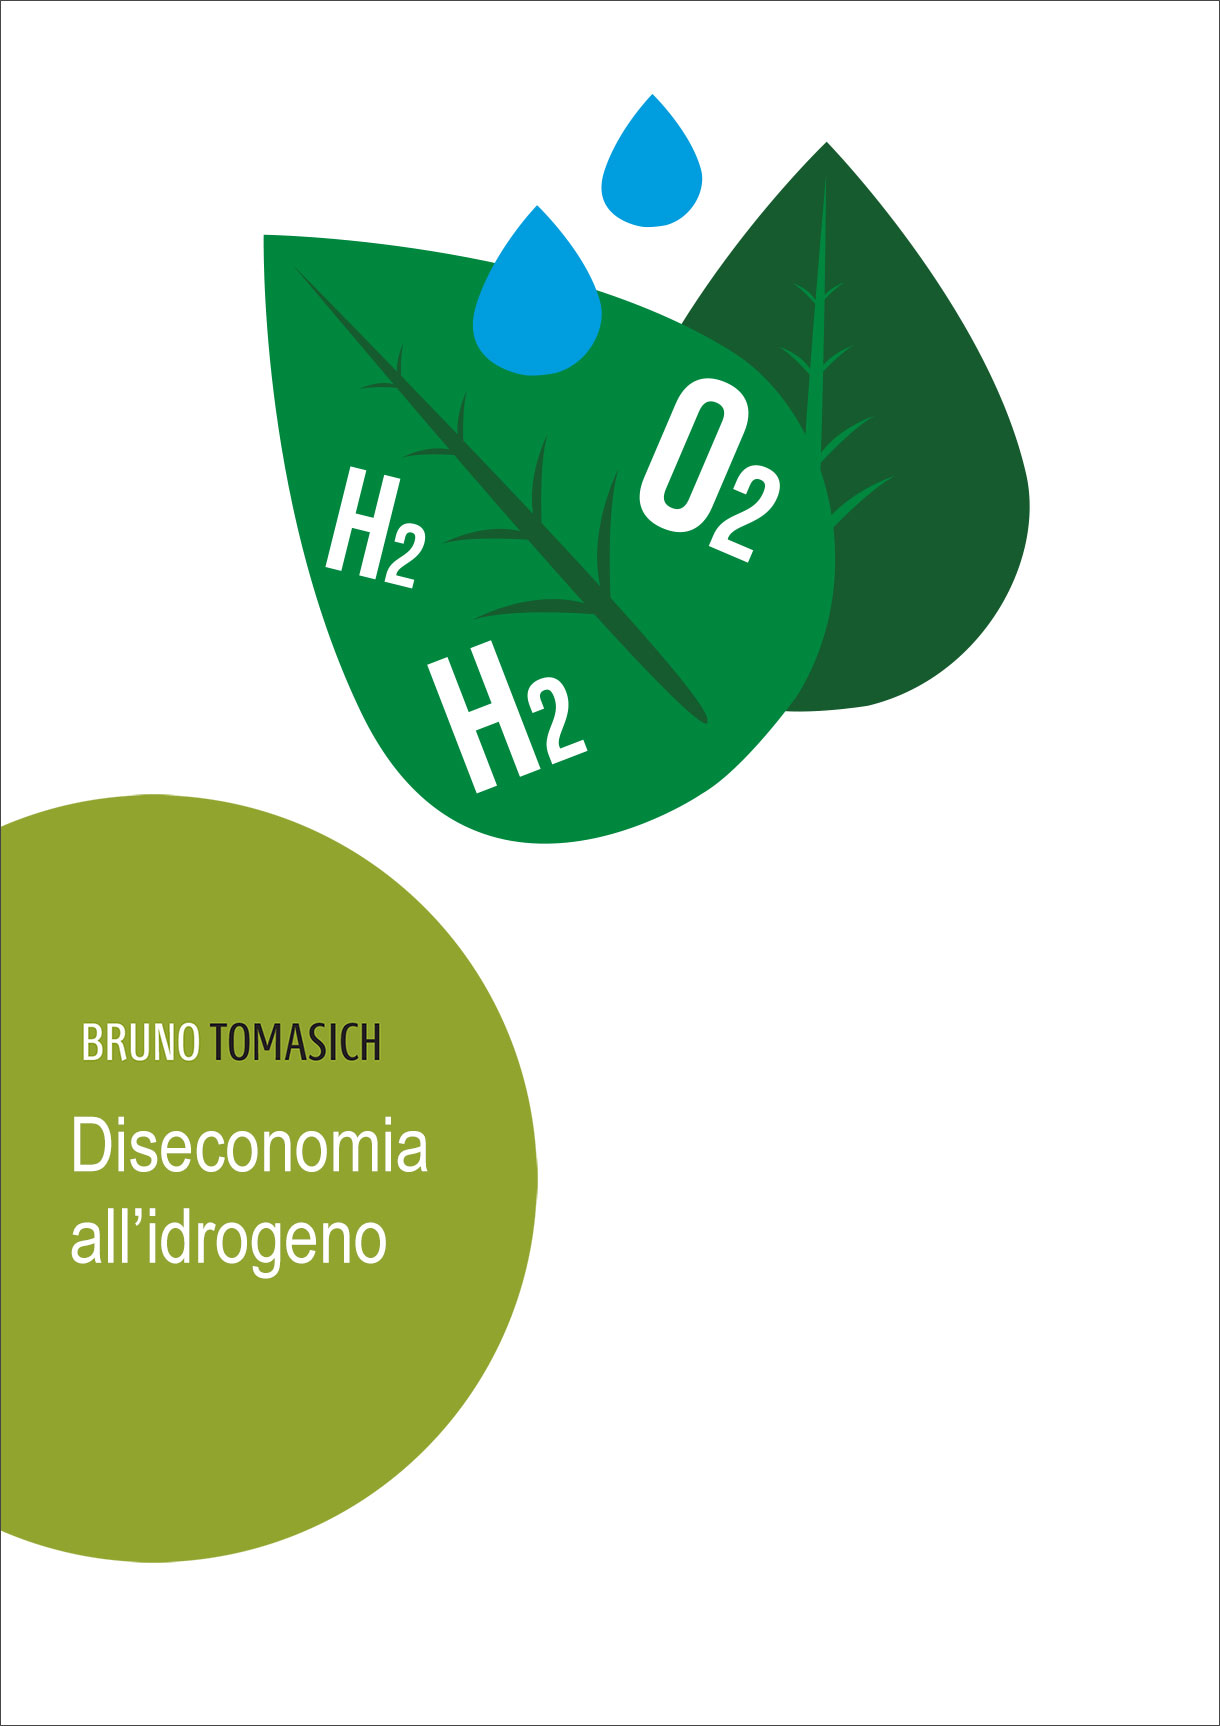 Diseconomia all'Idrogeno | Cover for Bruno Tomasich